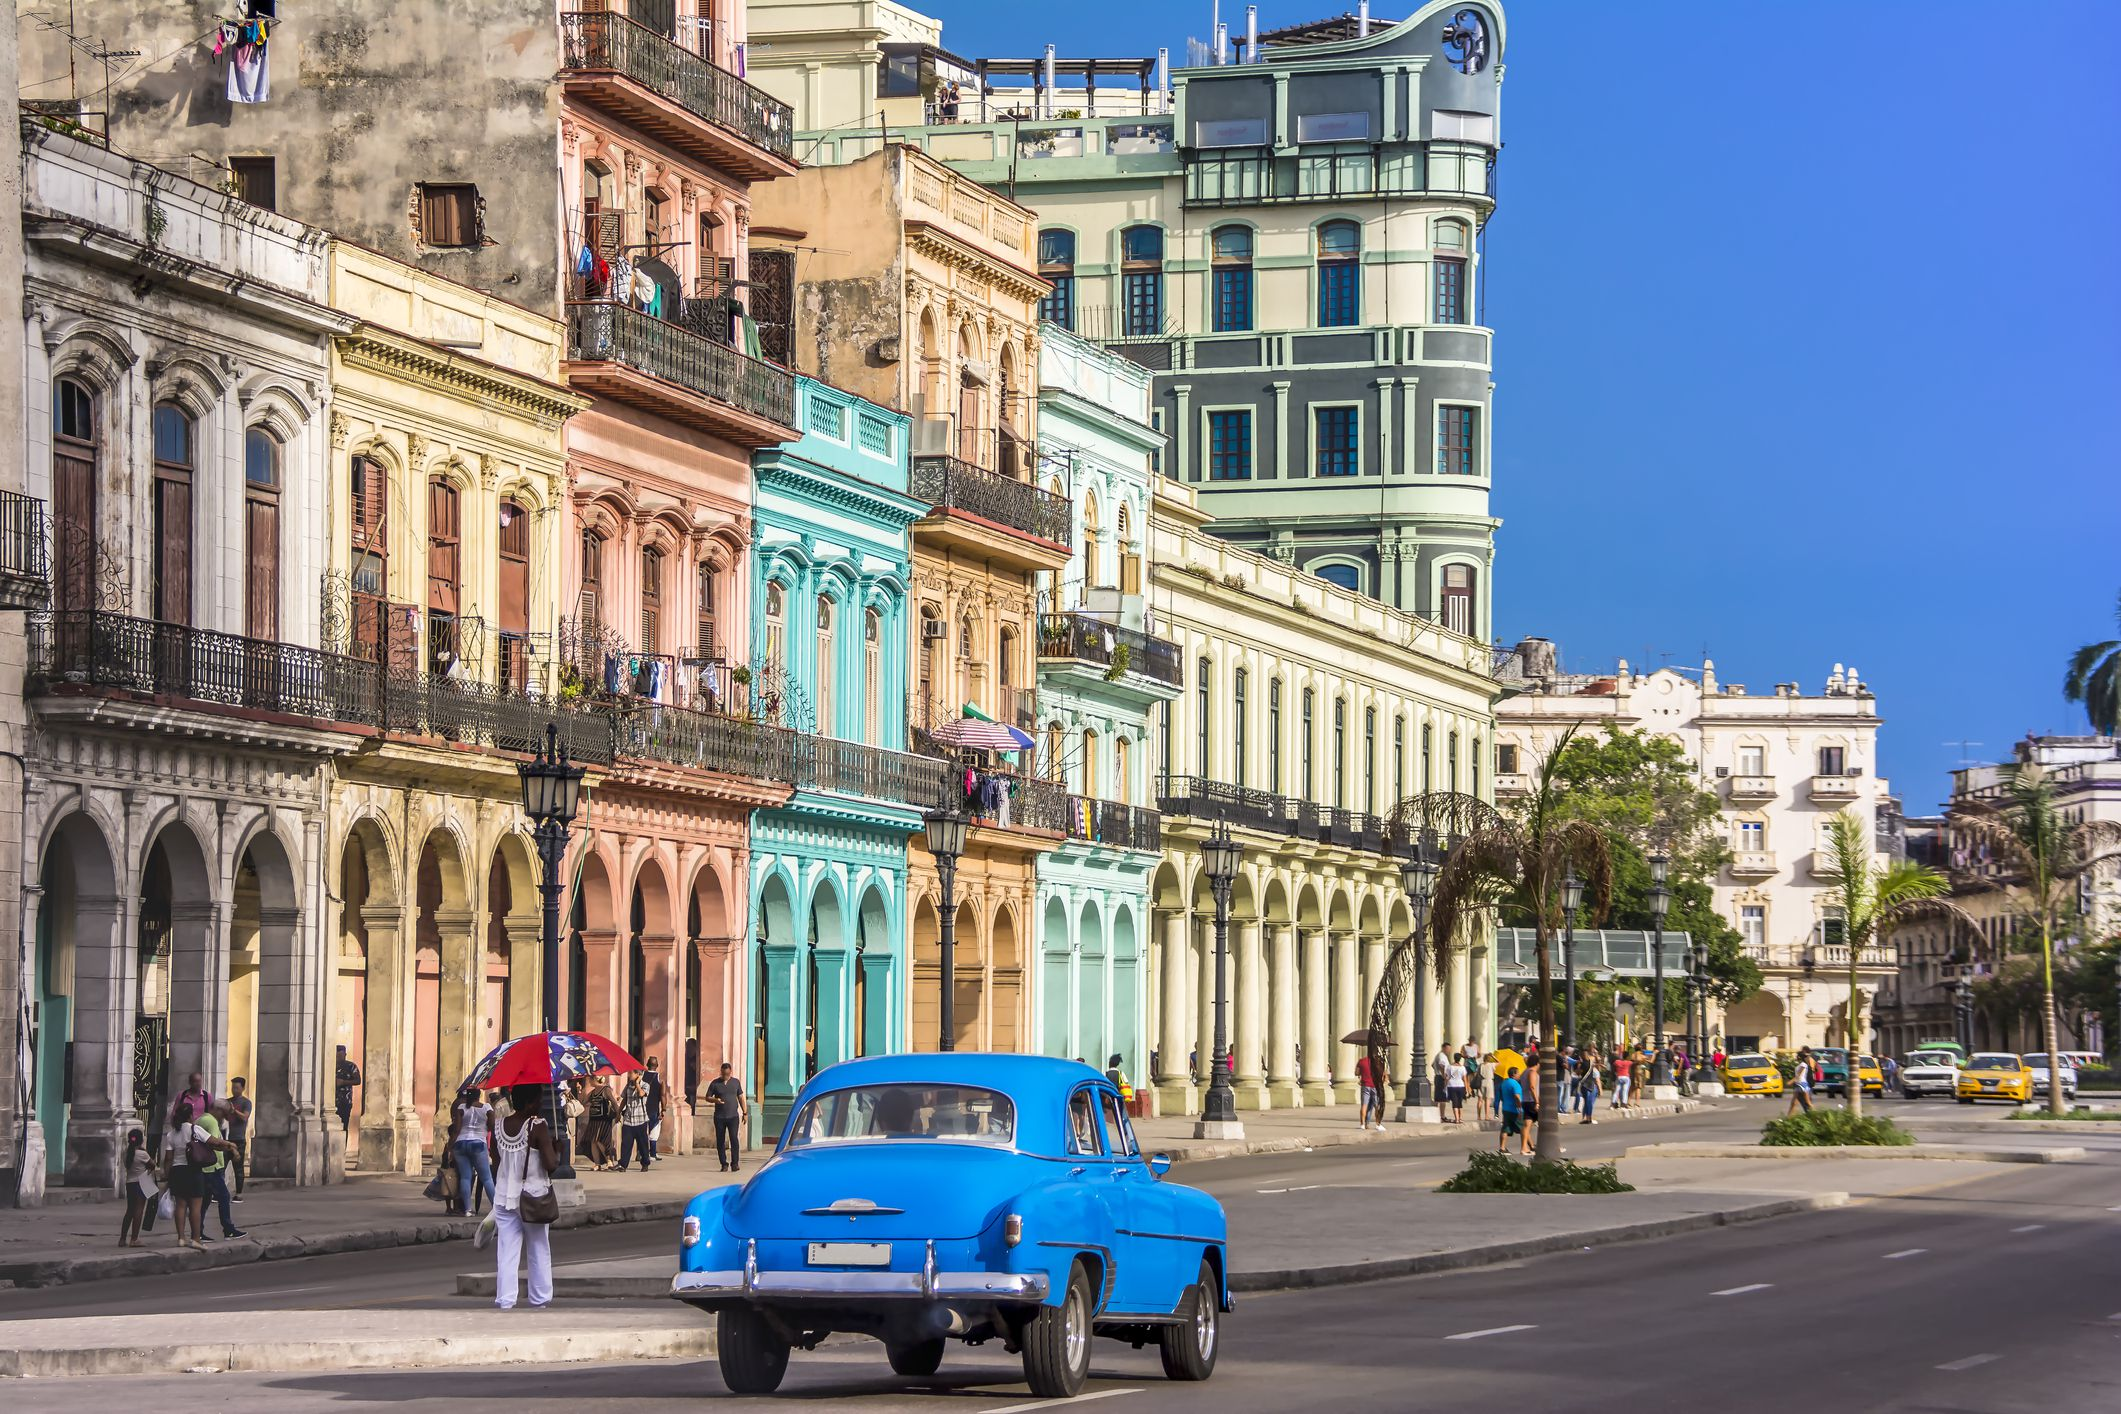 U.S. Travelers Can Visit Cuba Without COVID-19 Testing